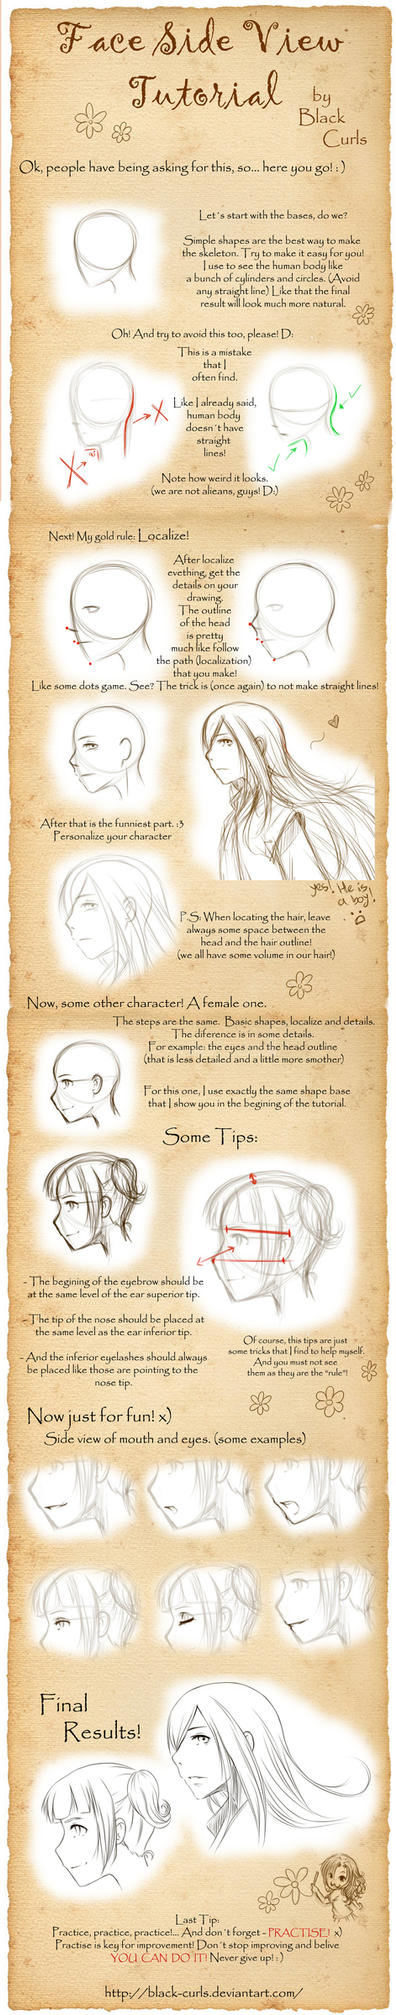 Face Side View Tutorial by Black-Curls